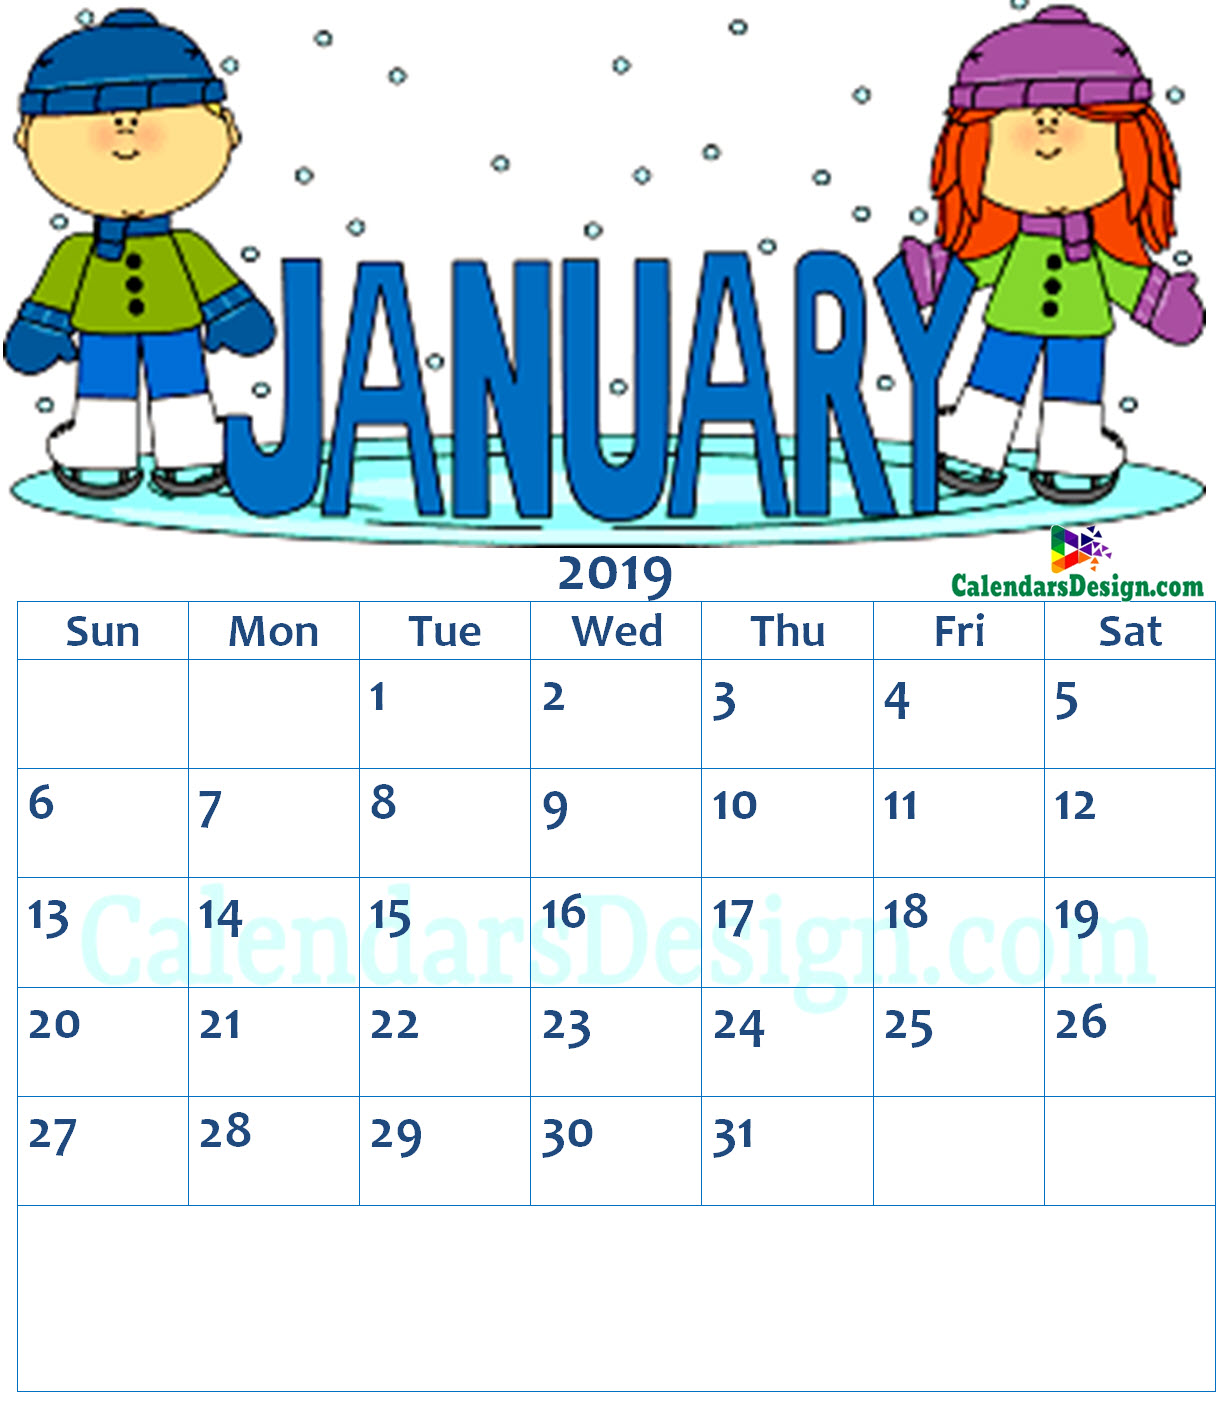 January 2019 Calendar Clipart.